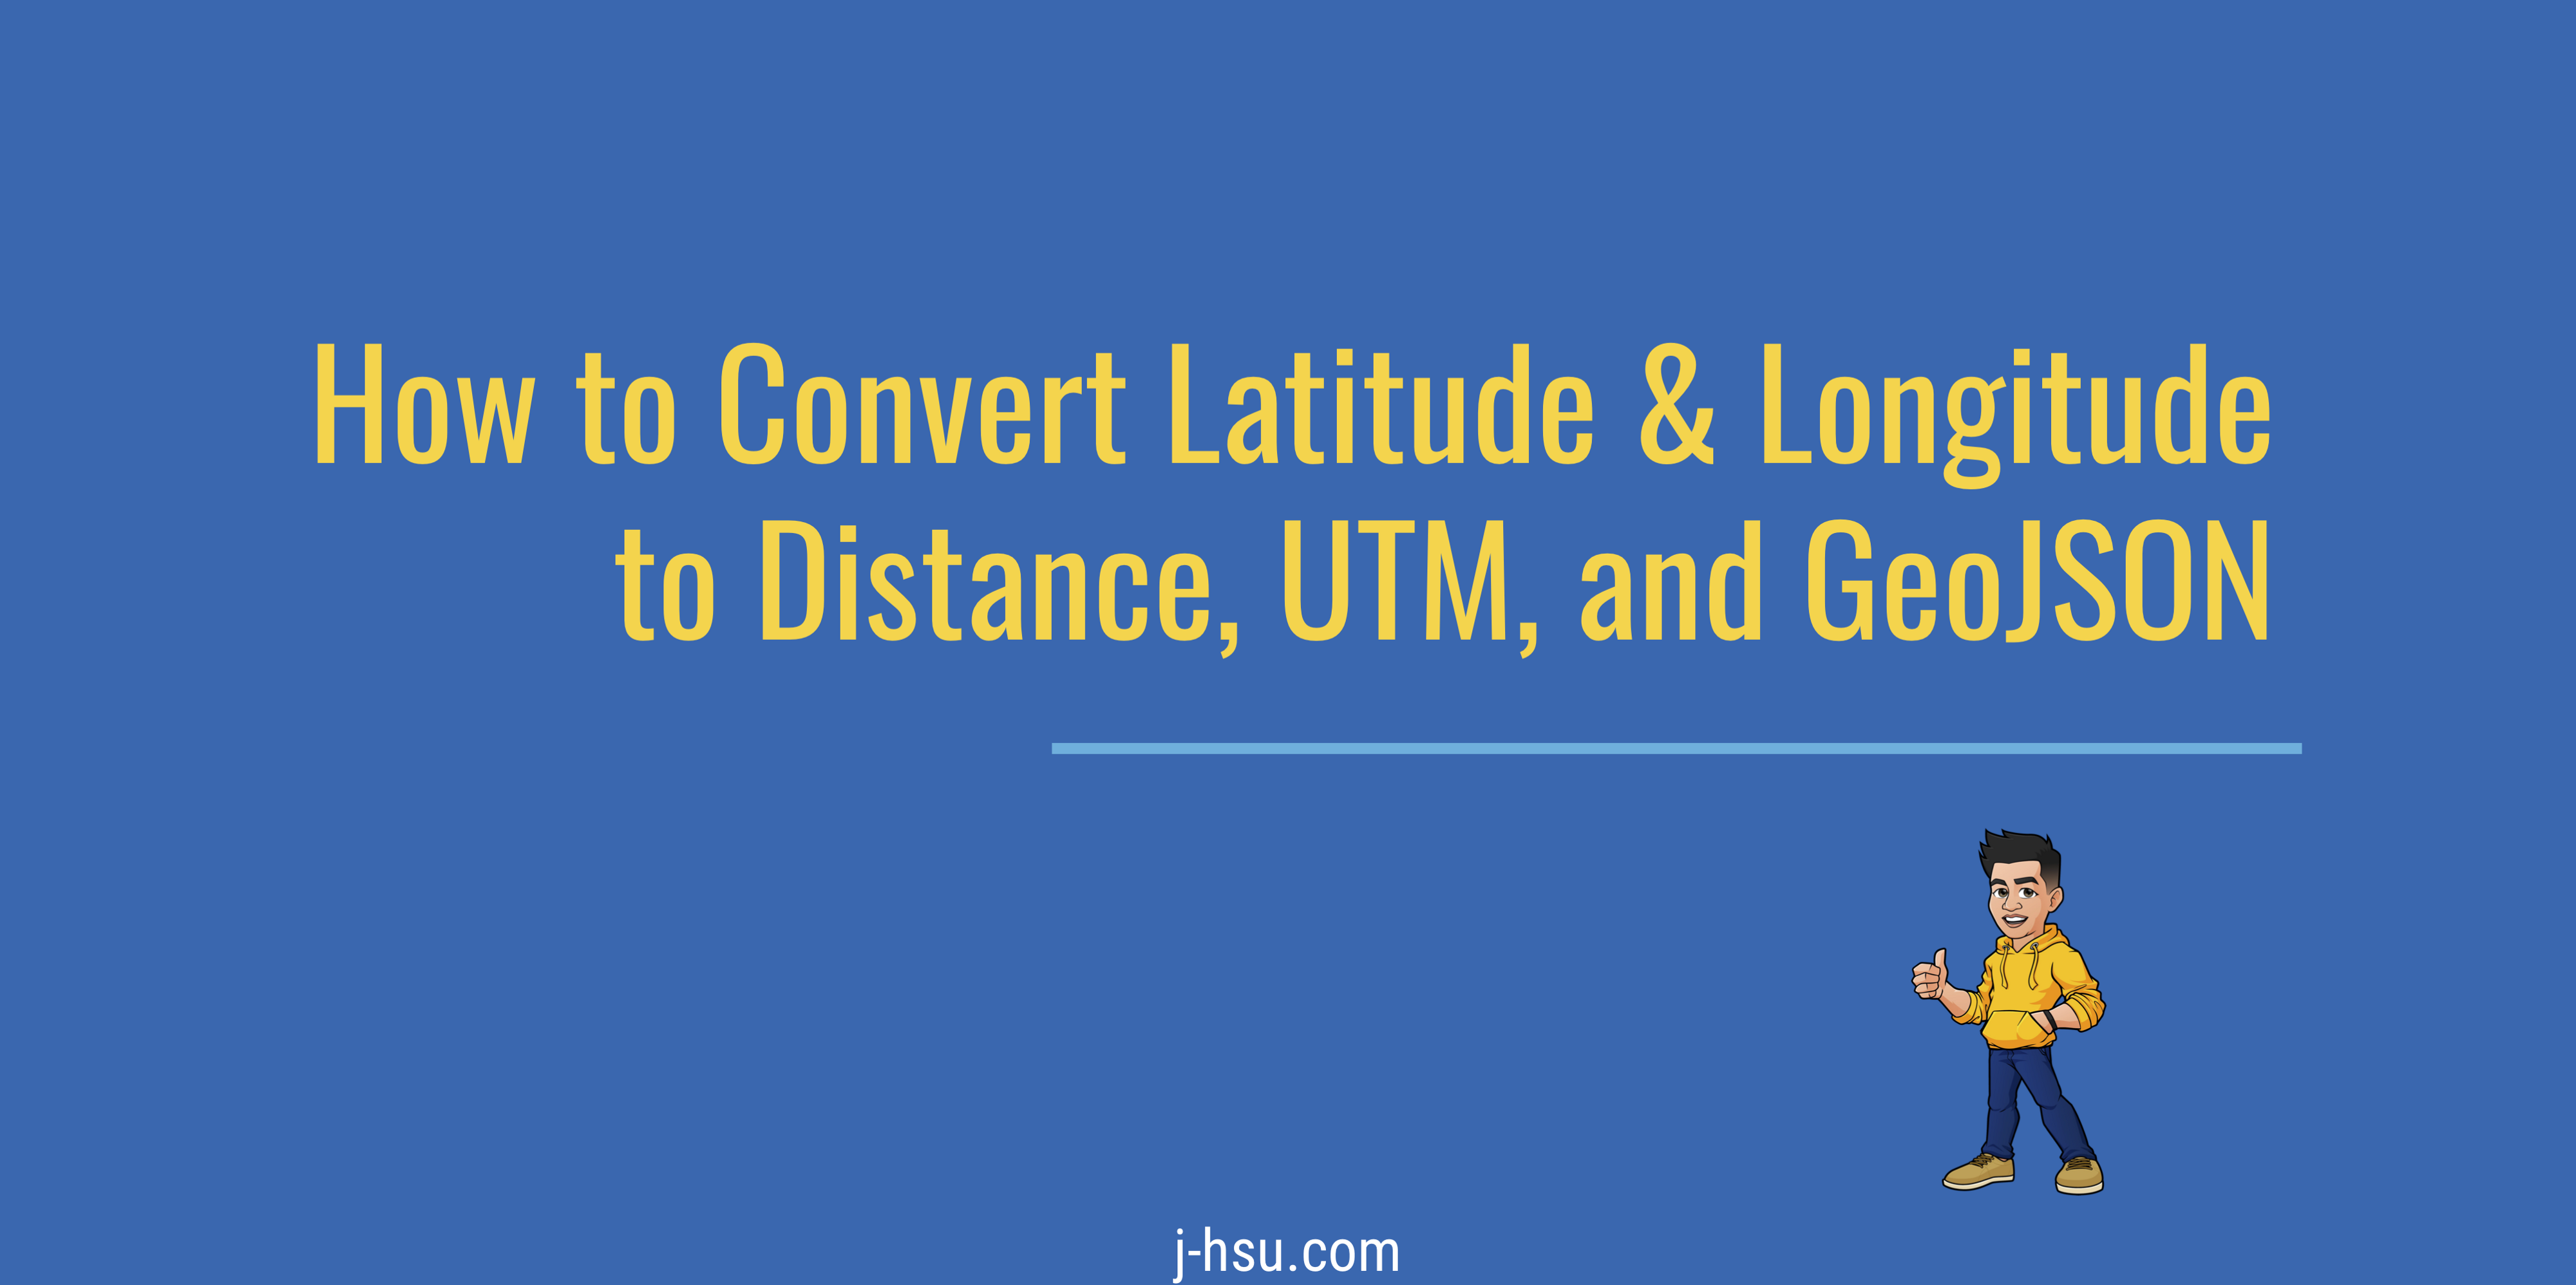 How to Convert Latitude & Longitude to Distance, UTM, and